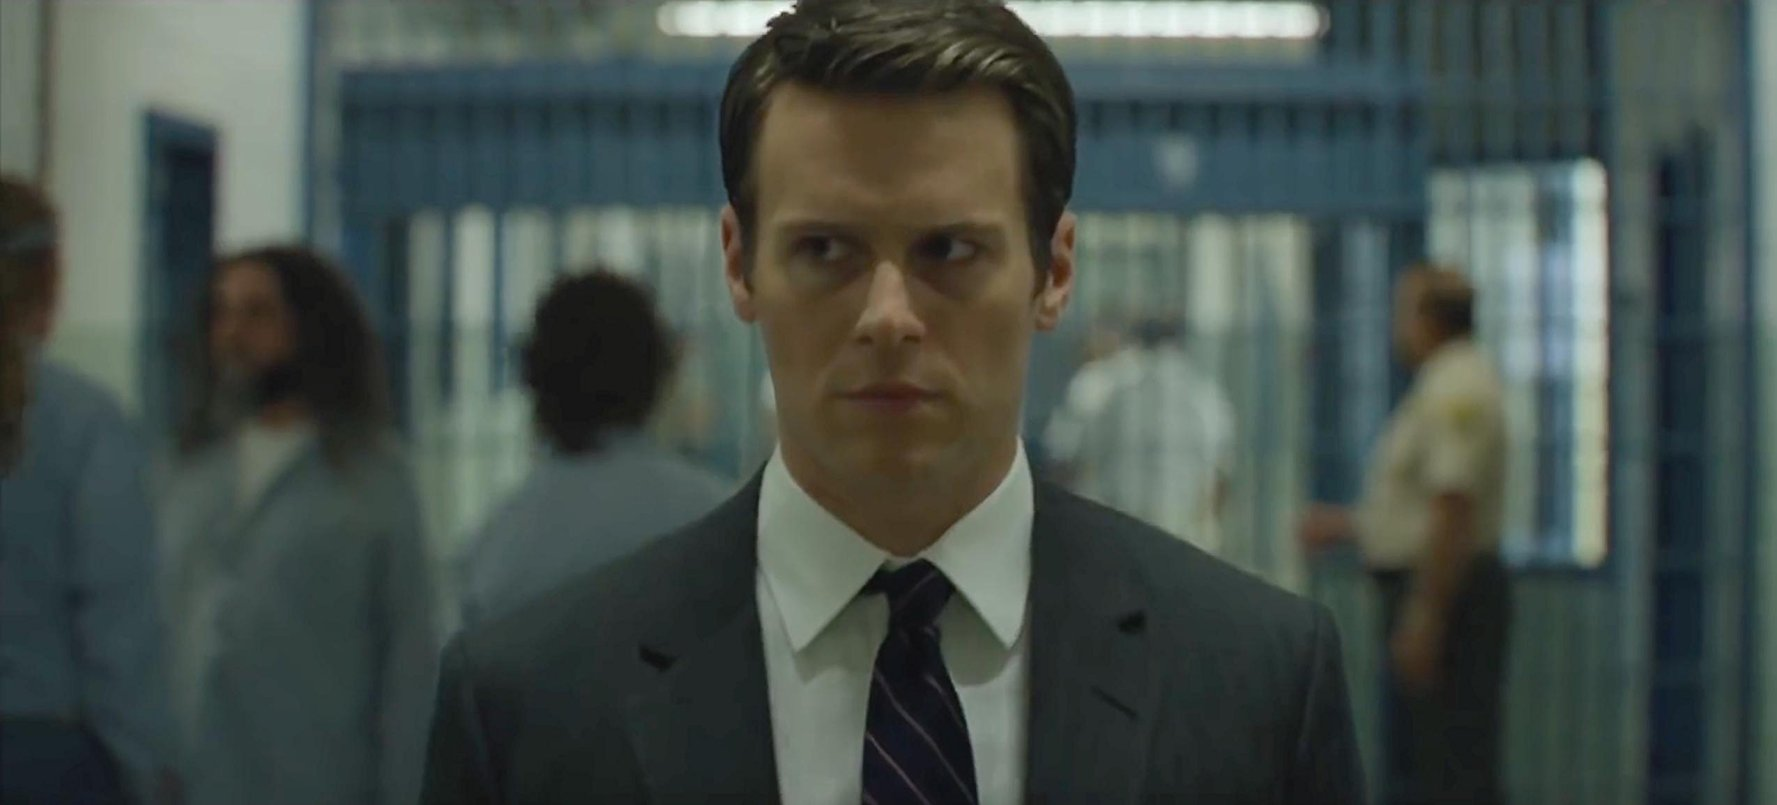 Mindhunter - Jonathan Groff in Mindhunter (2017)